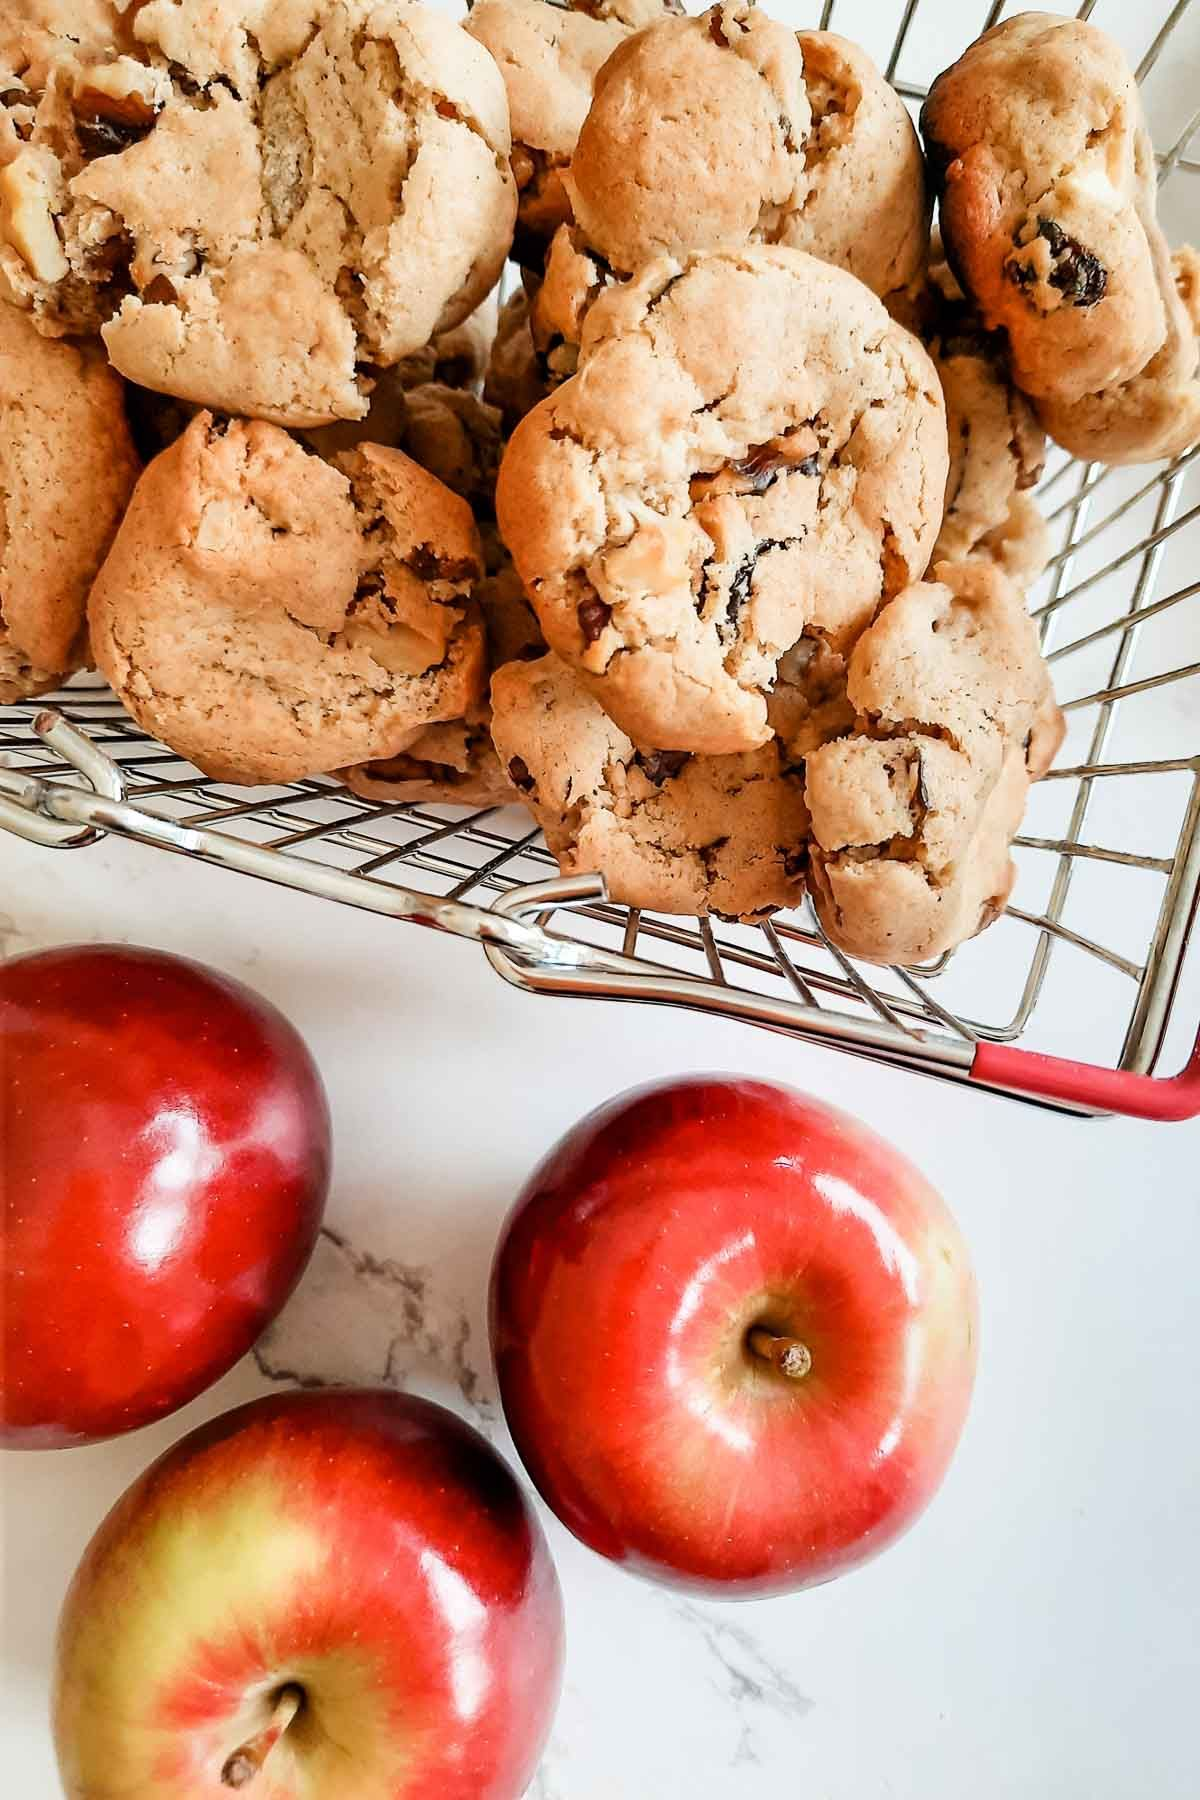 Apple raisin softies in a metal basket with apples nearby.